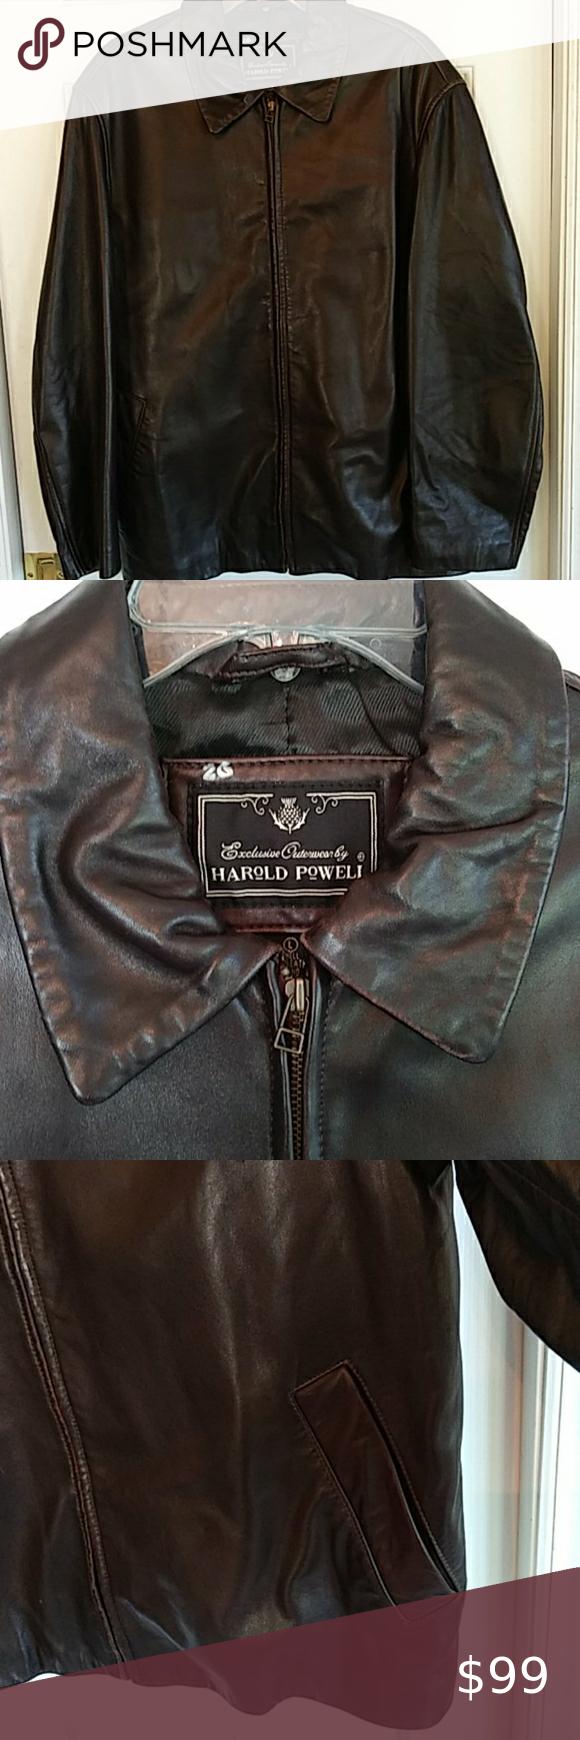 Men S Harold Powell Brown Leather Jacket Size L Brown Leather Jacket Leather Jacket Jackets [ 1740 x 580 Pixel ]